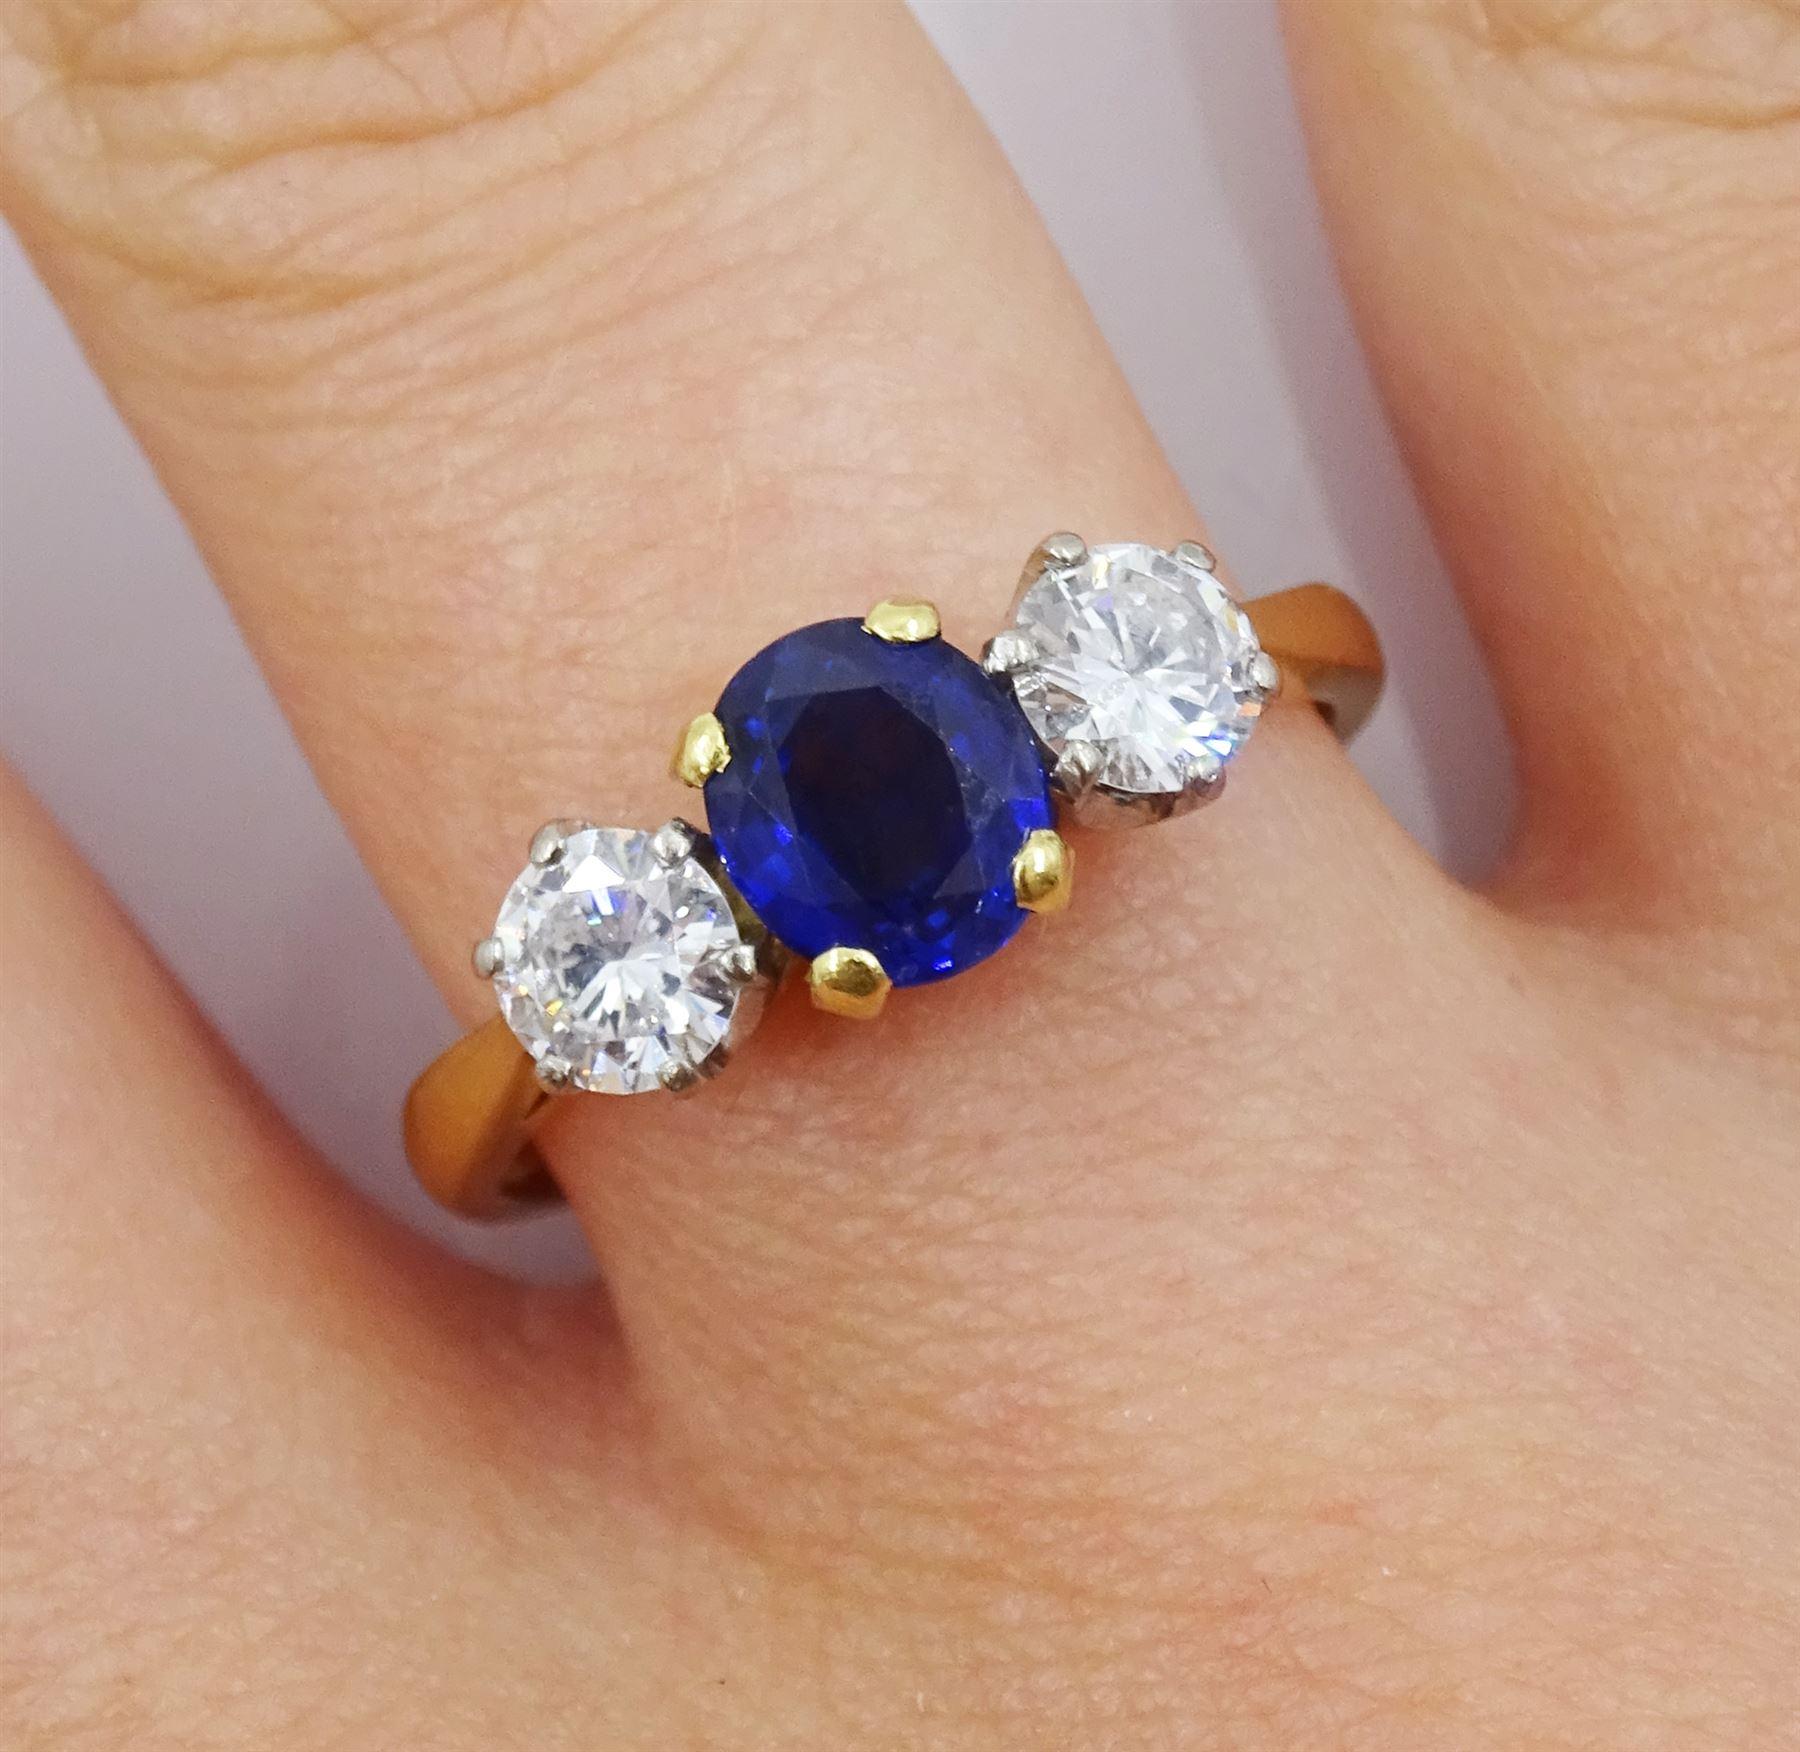 18ct gold three stone oval sapphire and round brilliant cut diamond ring - Image 3 of 4